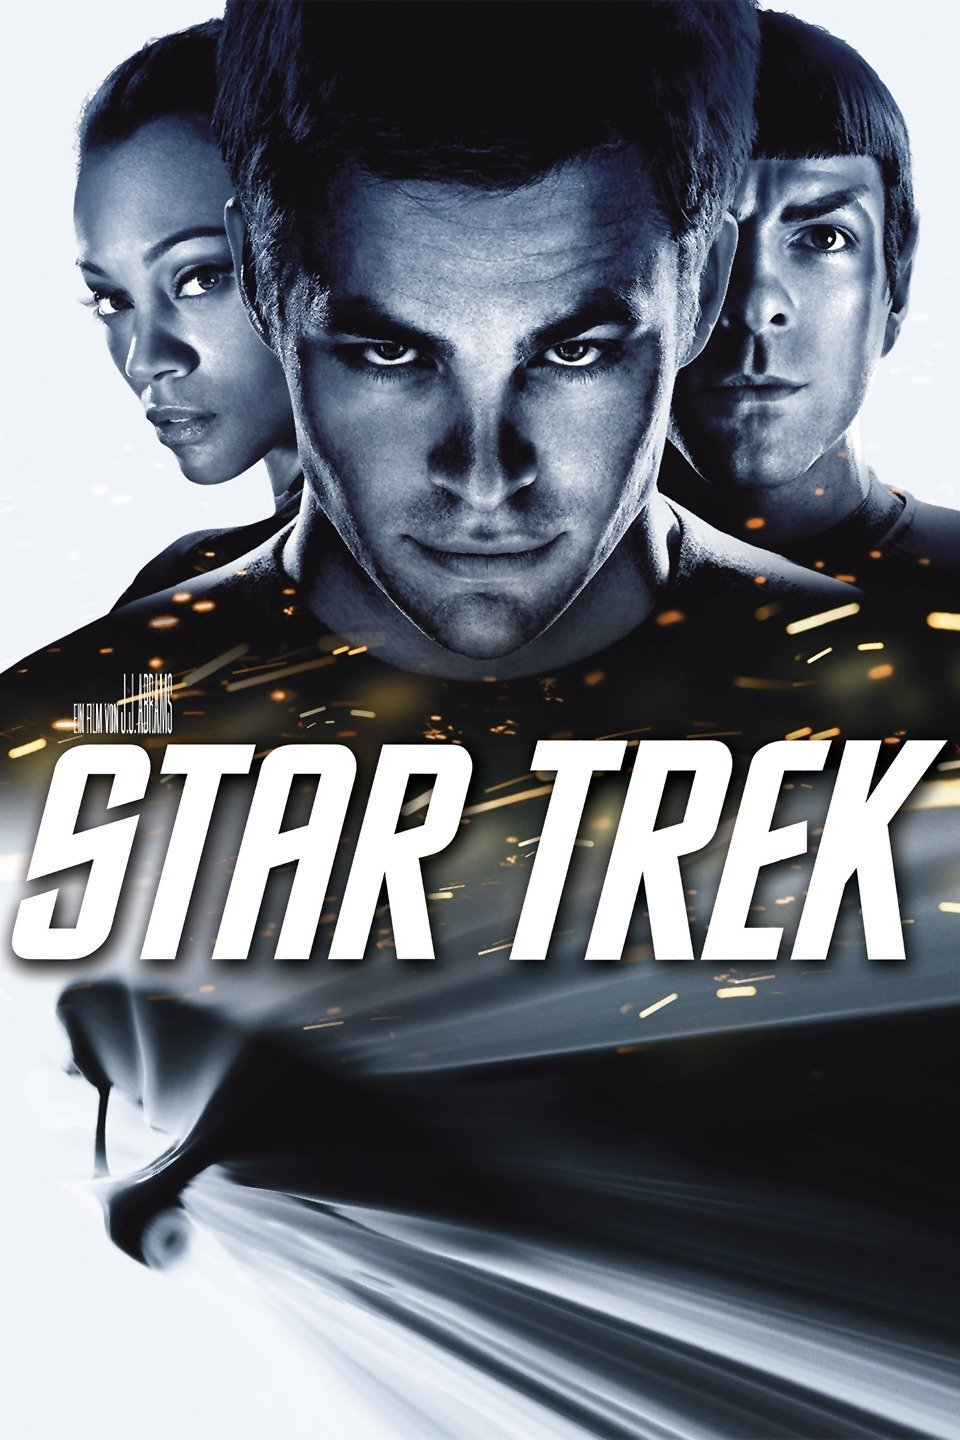 Star Trek (2009) Full Movie Download In Hindi-English-Tamil (Multi Audio) Bluray 480p [400MB] | 720p [1GB] | 1080p [2.8GB]